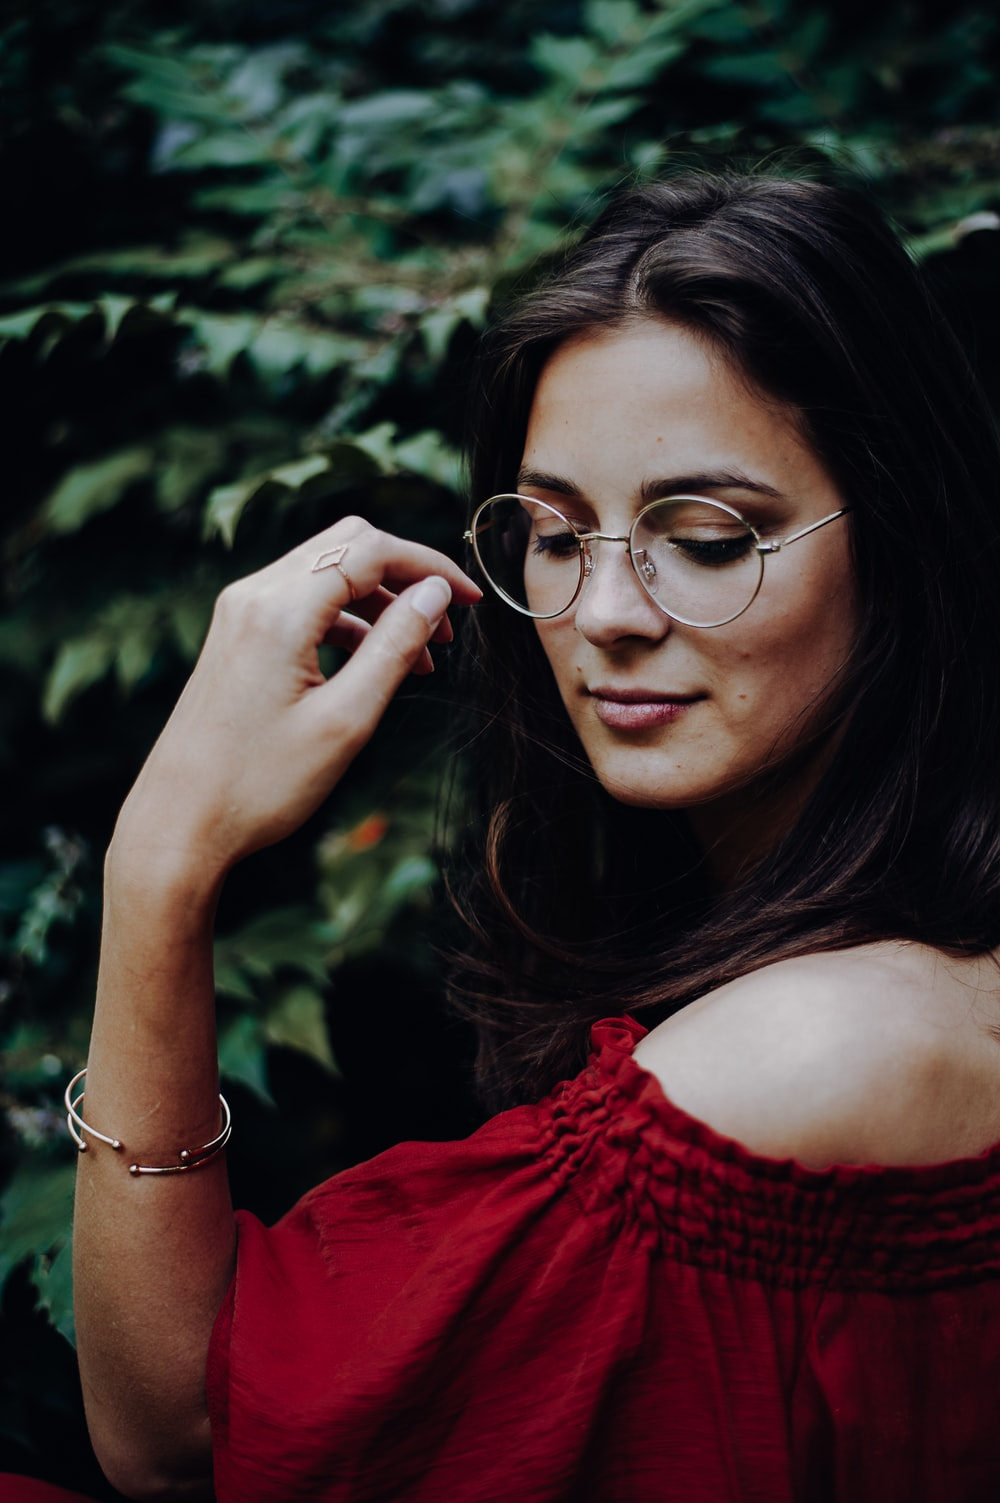 woman wearing red off-shoulder top